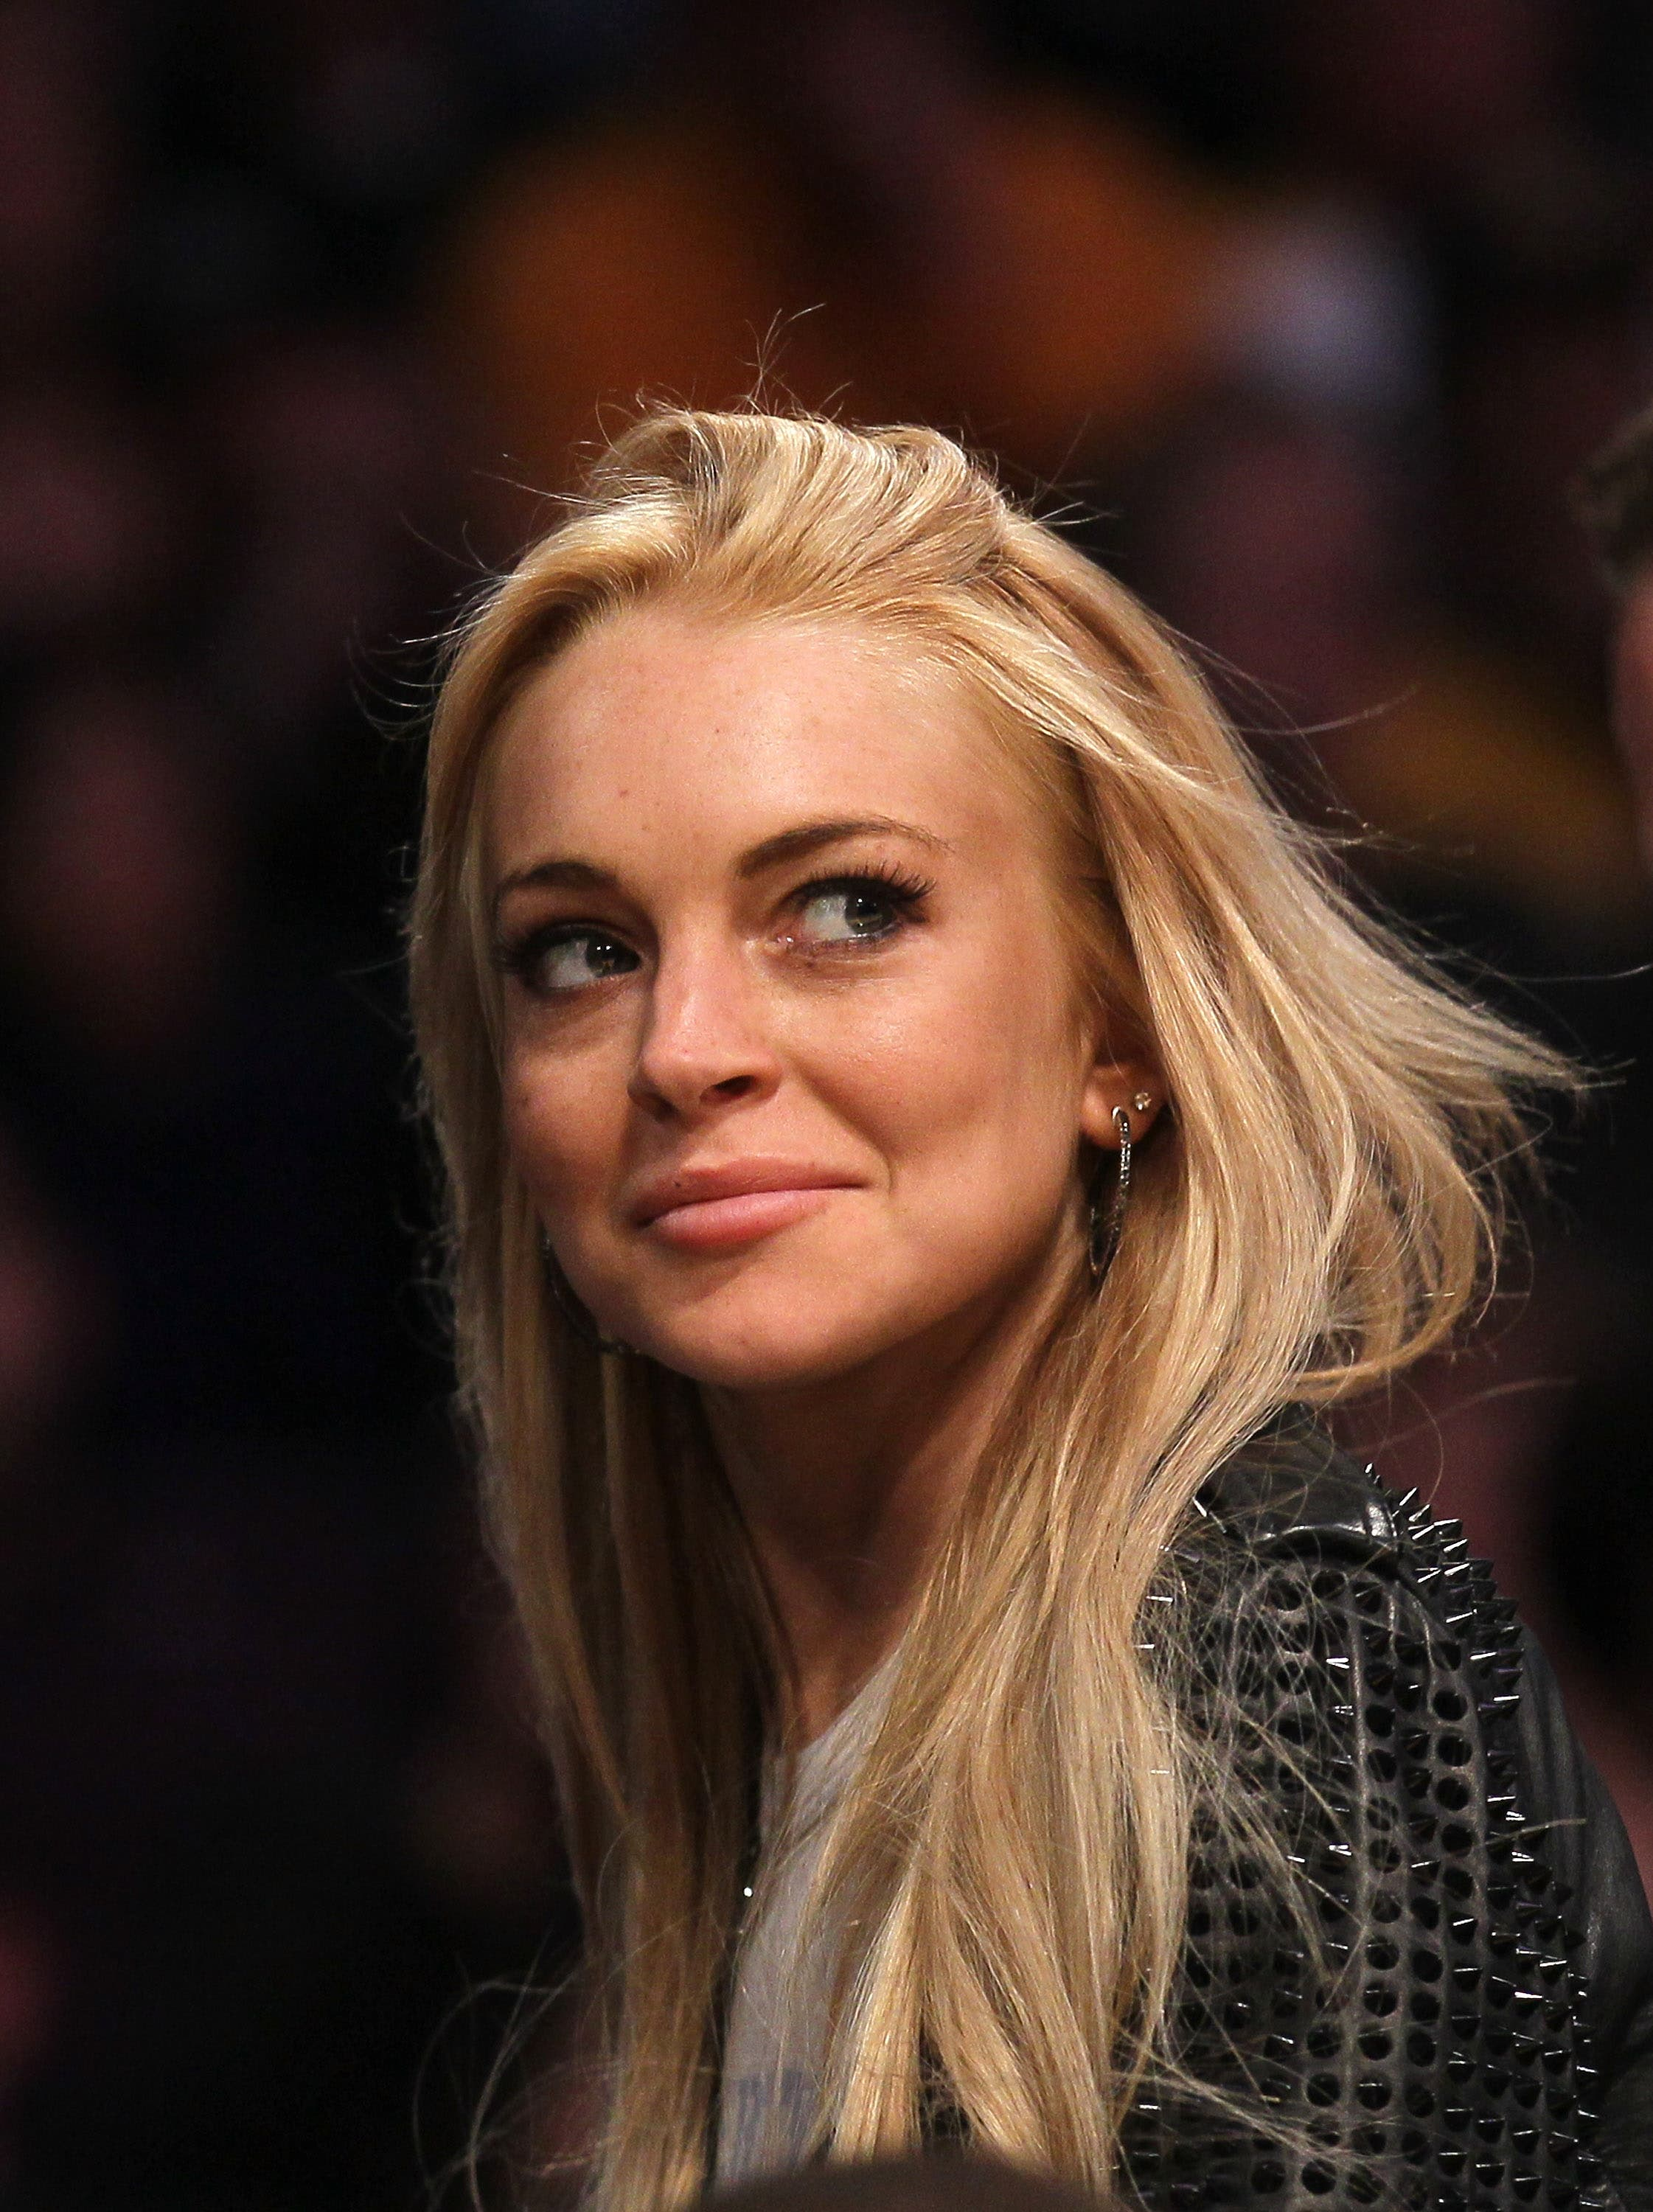 Western Celebrities as Lohan join the army of regional celebrities who are commenting on Egypt